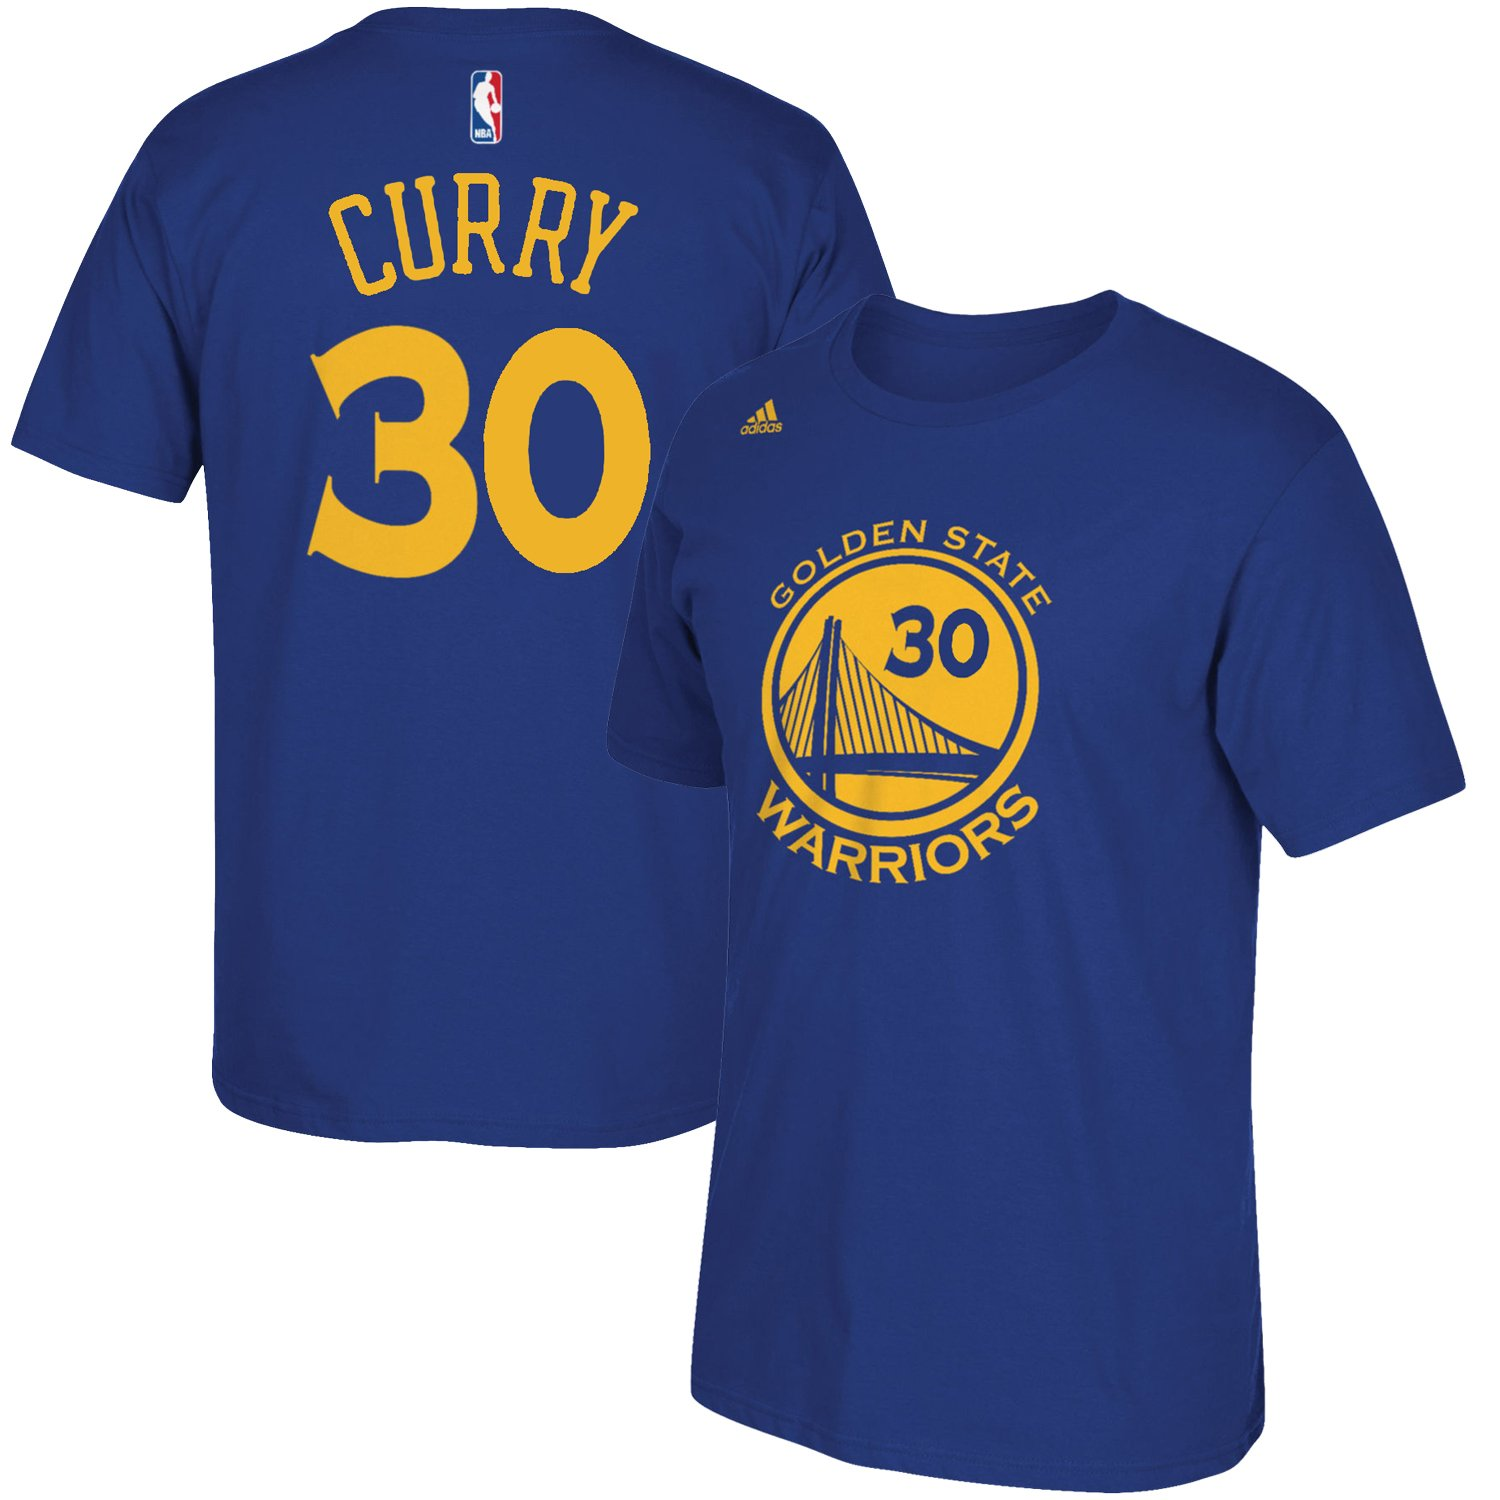 Outerstuff NBA Youth 8 20 Performance Game Time Team Color Player Name and Number Jersey T Shirt Stephen Curry